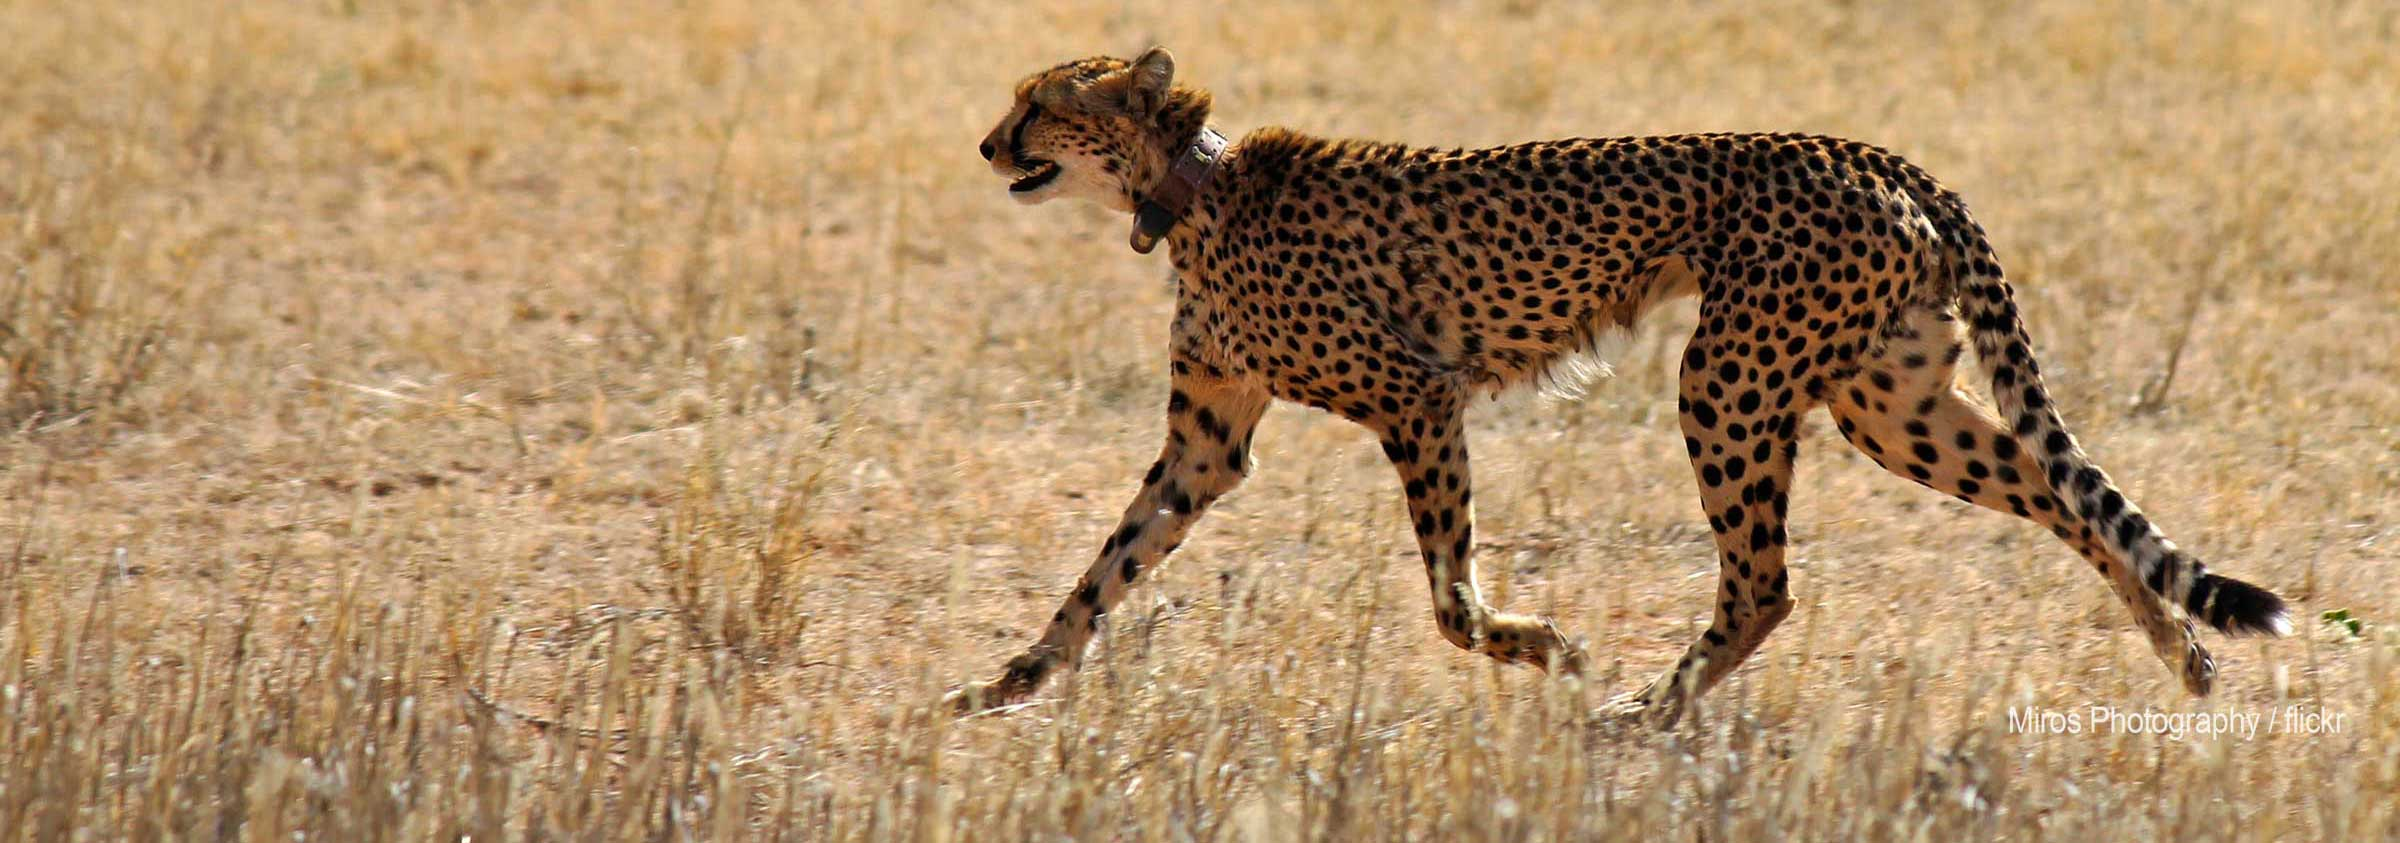 cheetah with GPS collar